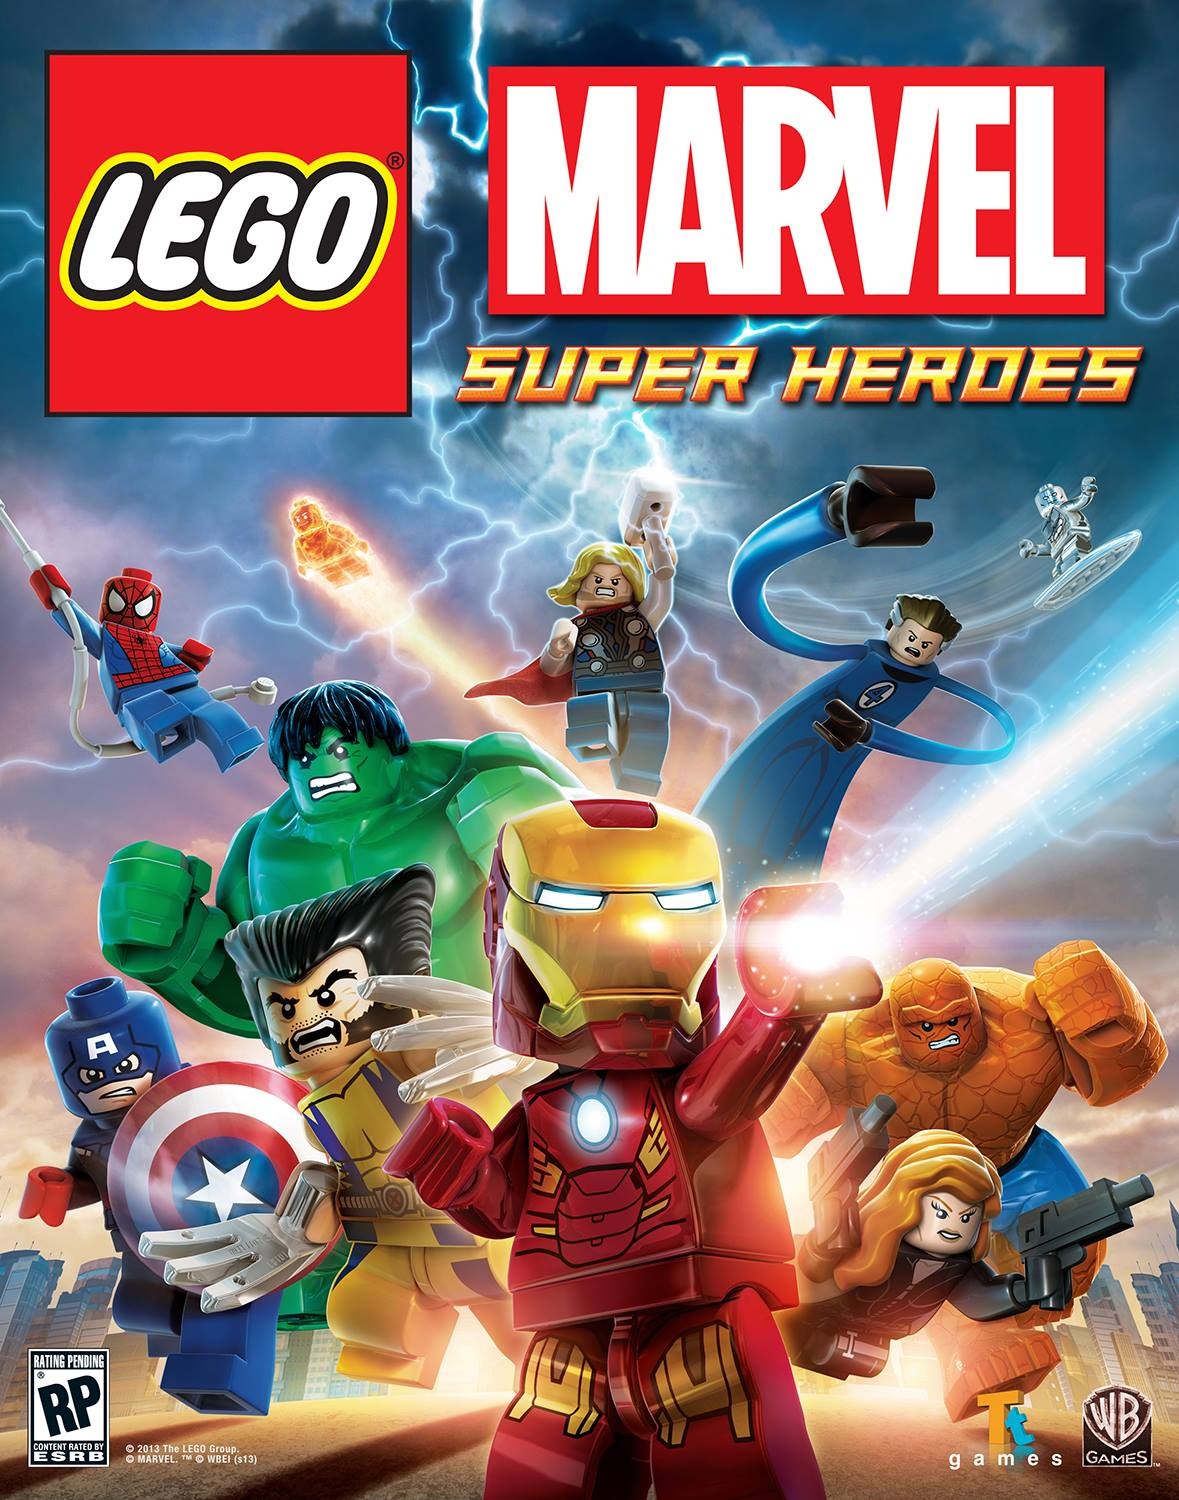 2014 Lego Marvel Superhero Sets Spider Man Avengers X Men More